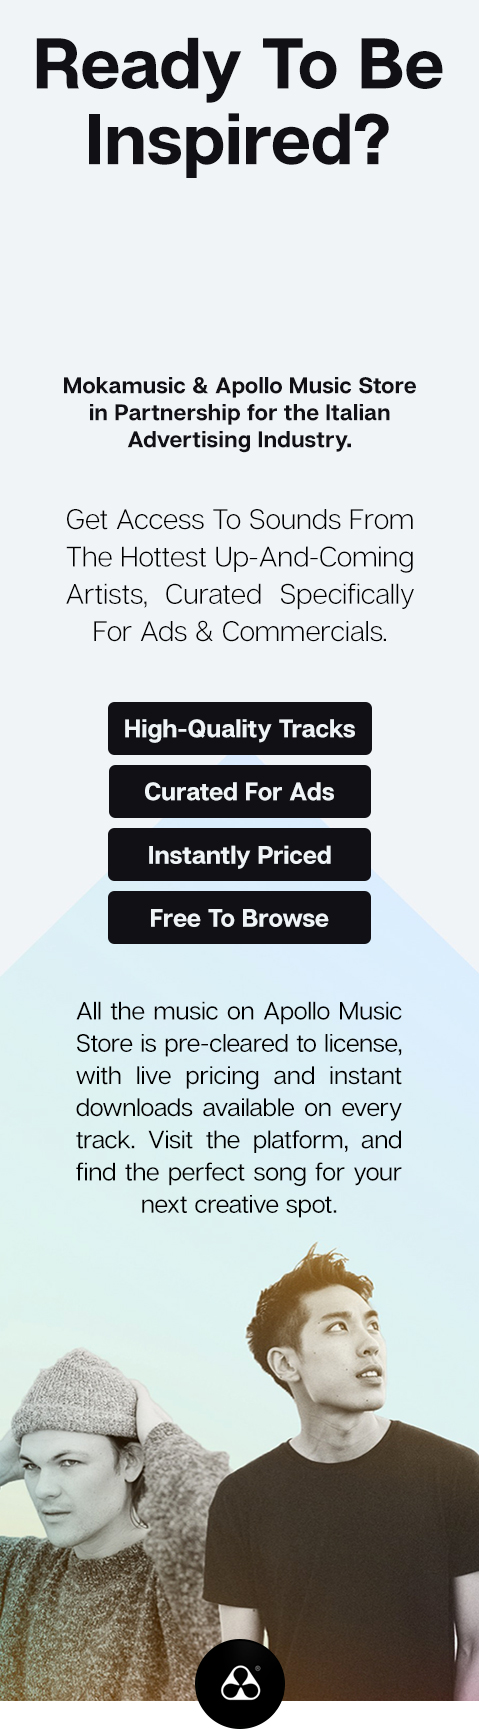 Ready To Be Inspired? Mokamusic and Bopper in Partnership for the Italian Advertising Industry. Get Access To Sounds From The Hottest Up-And-Coming Artists, Curated Specifically For Ads & Commercials. High-Quality Traks. Curated For Ads. Instantly Priced Free To Browse. All the music on Bopper is pre-cleared to license, with live pricing & instant downloads available on every traks. Visit the platform, and find the perfect song for your next creative spot.